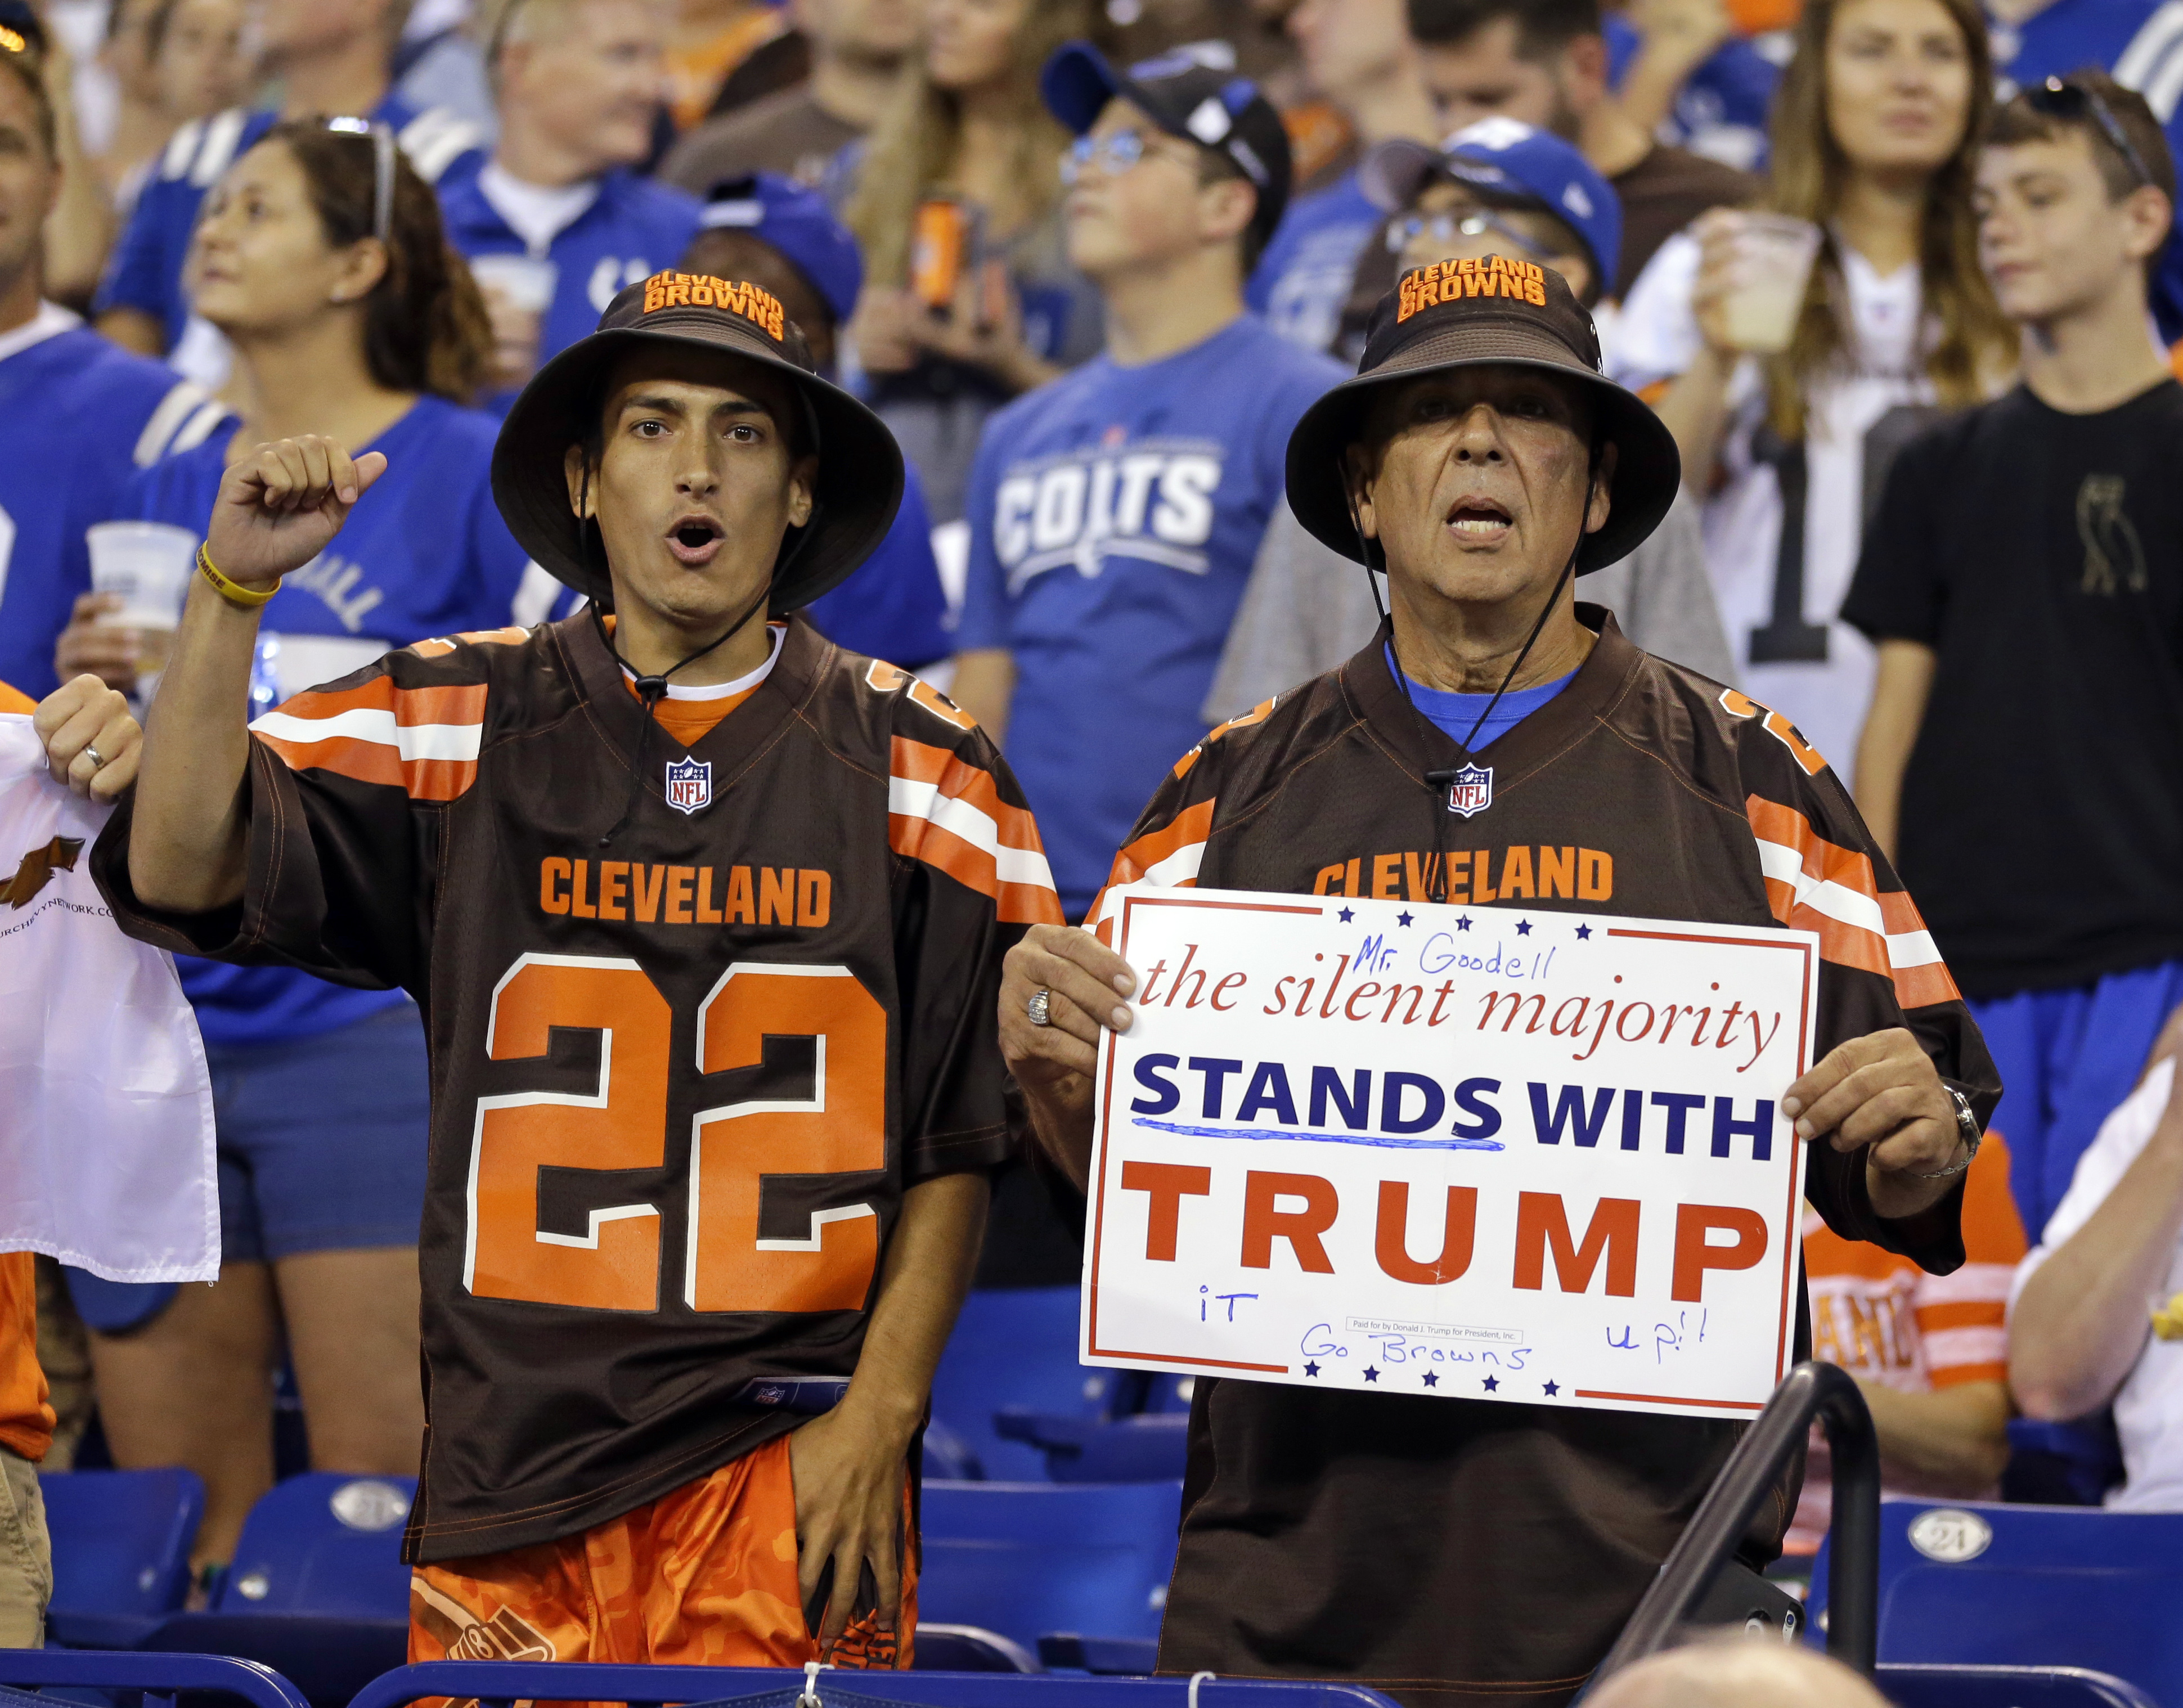 Cleveland Browns fans show their allegiance to President Trump on an issue that started last season when former San Francisco quarterback Colin Kaepernick took a knee to protest social injustice. (AP Photo/Michael Conroy, File)